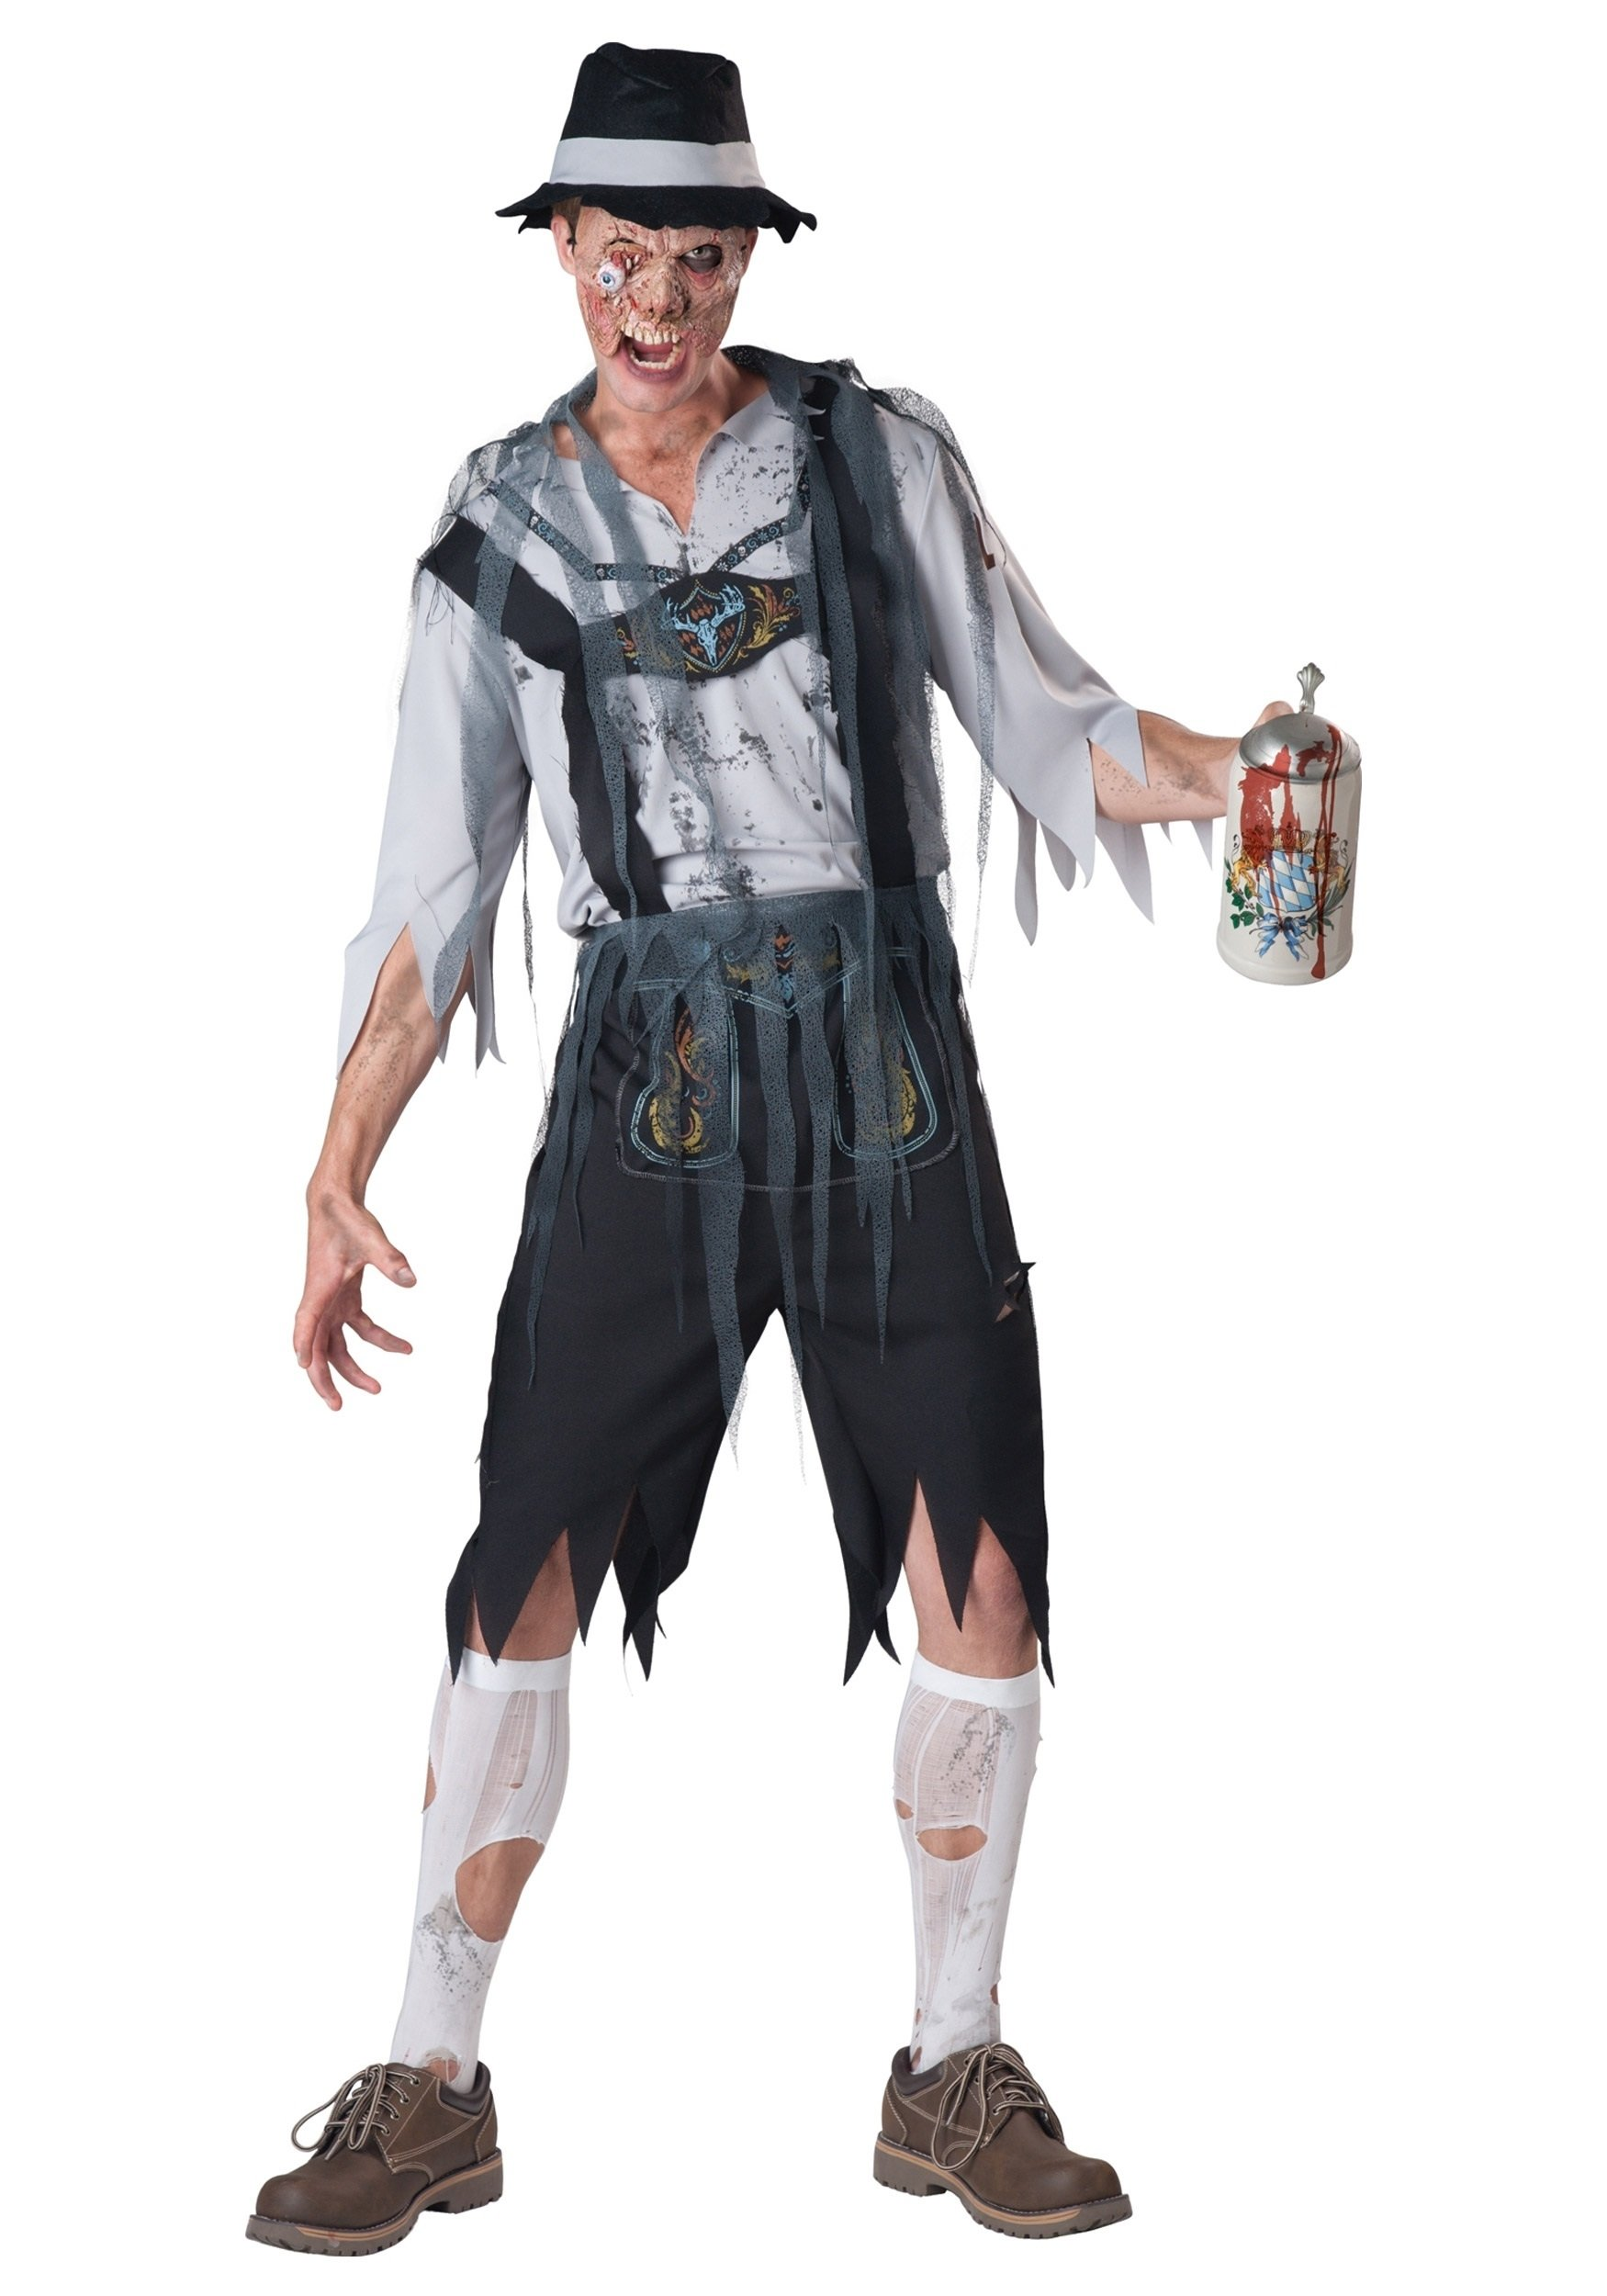 10 Fashionable Zombie Costume Ideas For Men top scary zombie halloween costume ideas this year 2020